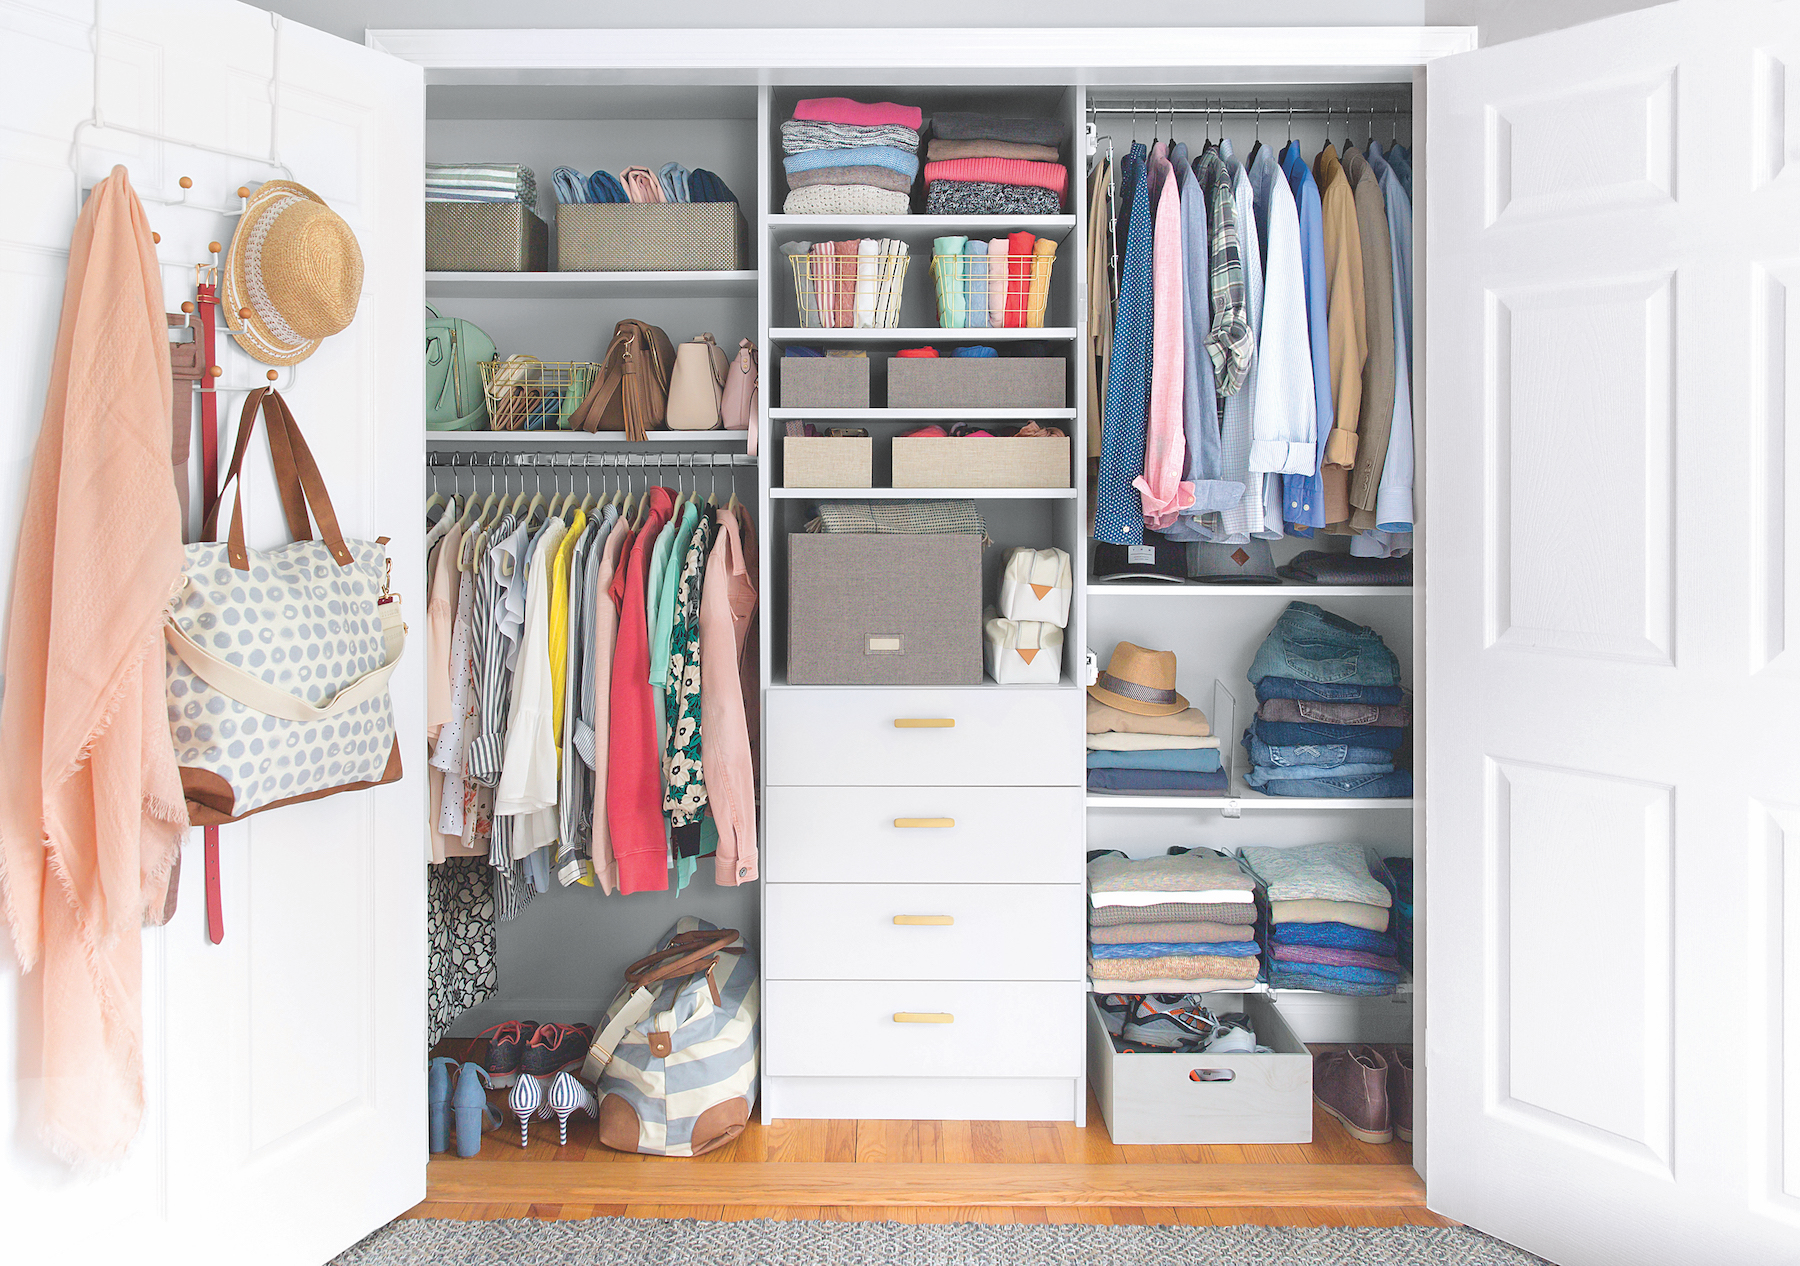 How to Organize a Closet, beautiful closet with scarves, bag, shoes